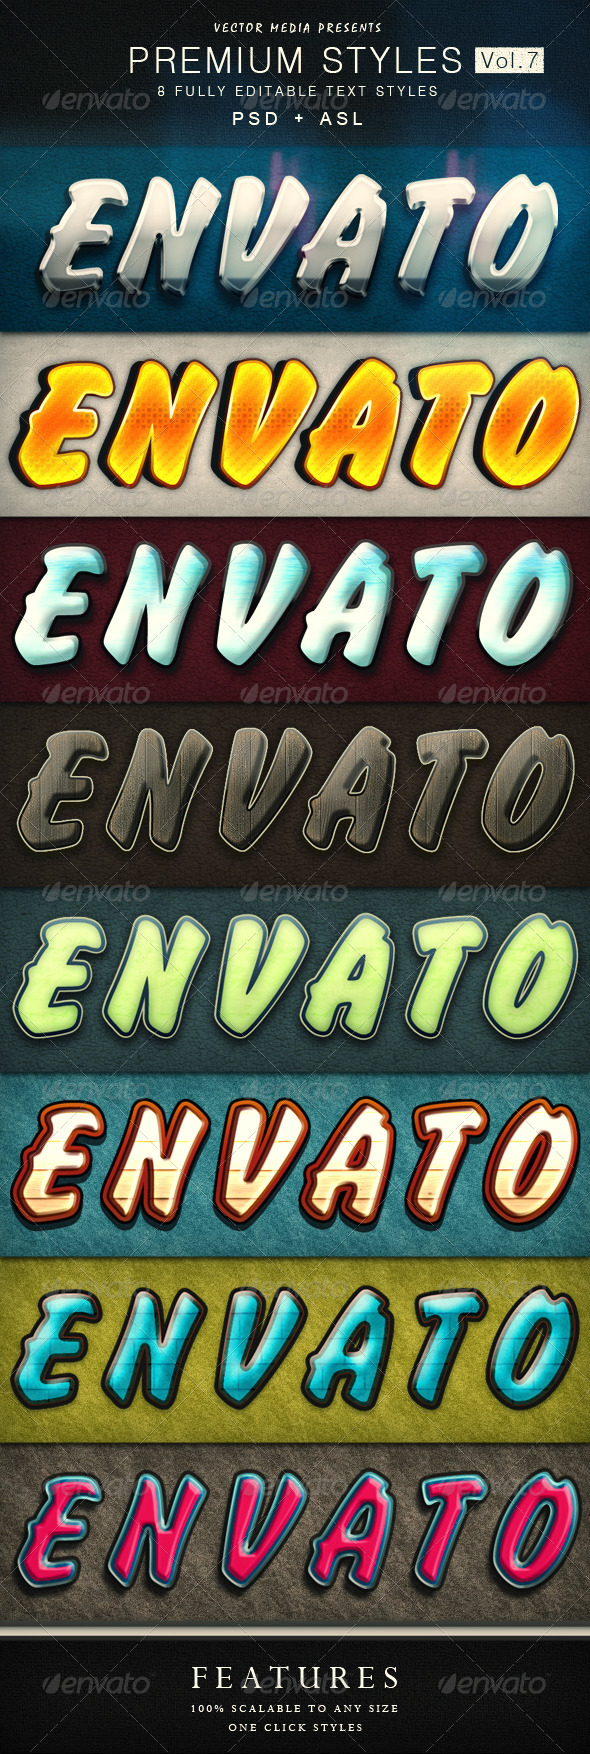 GraphicRiver Premium Text Styles Vol.7 4726236